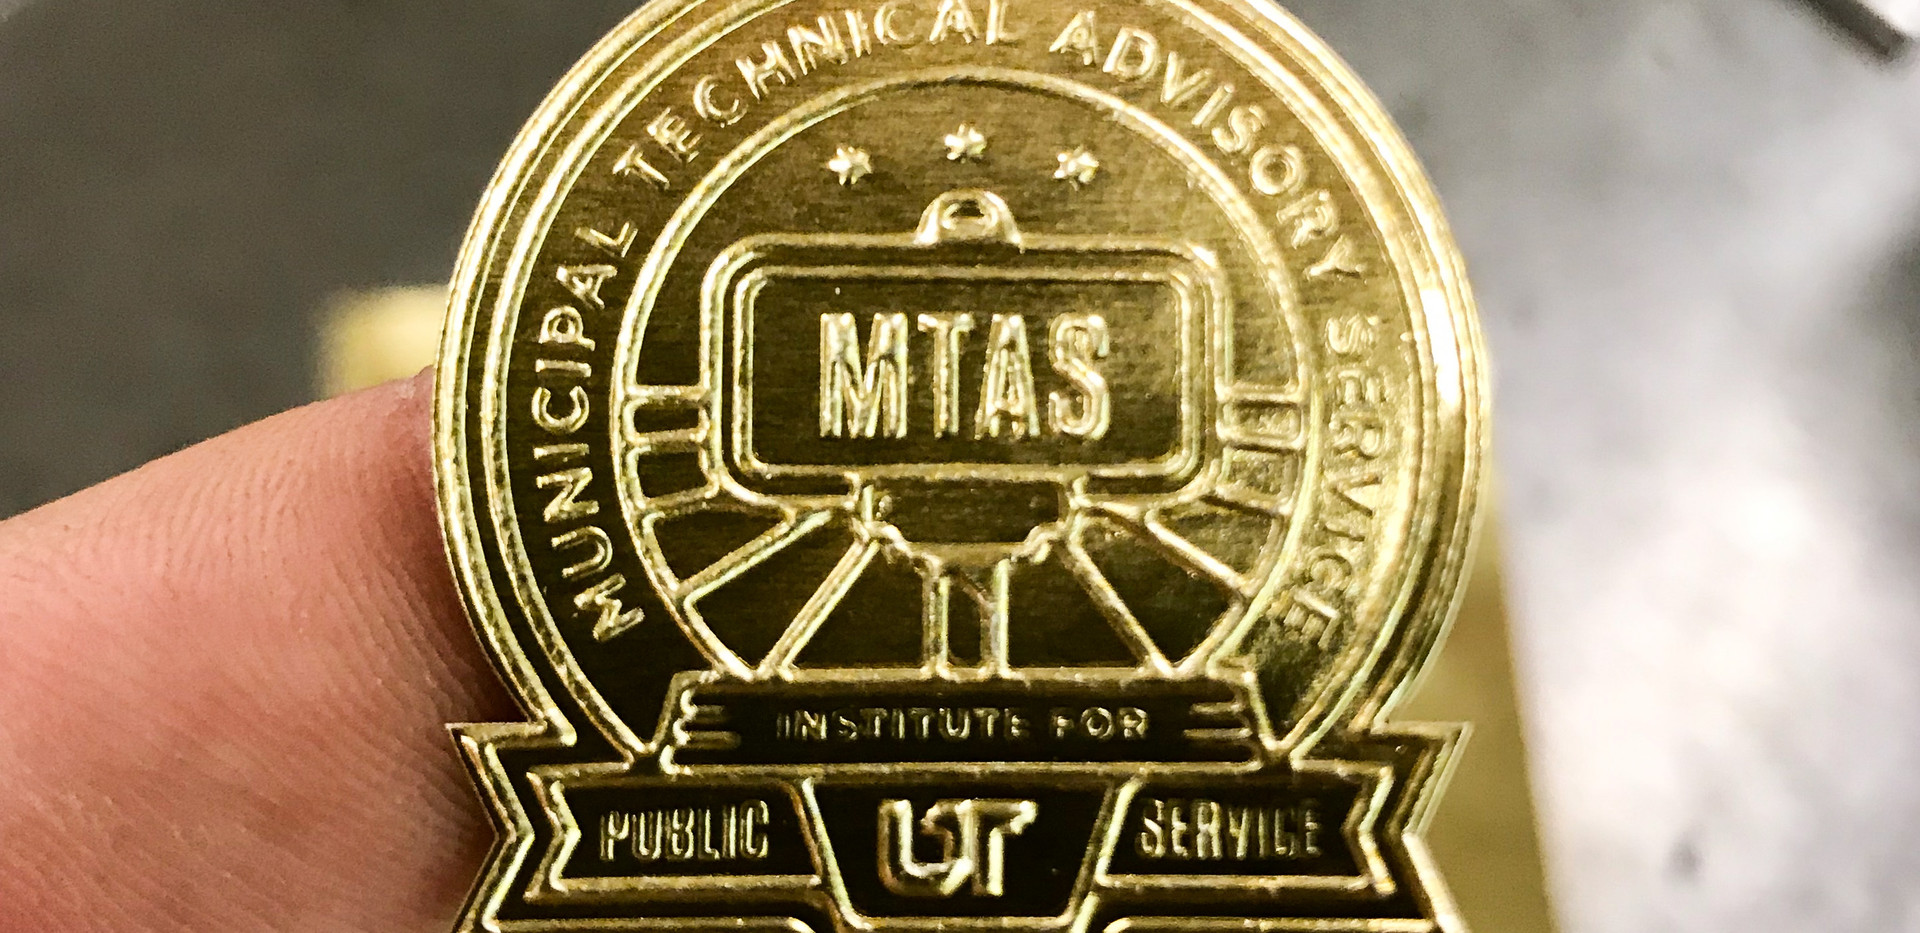 UT MTAS Label